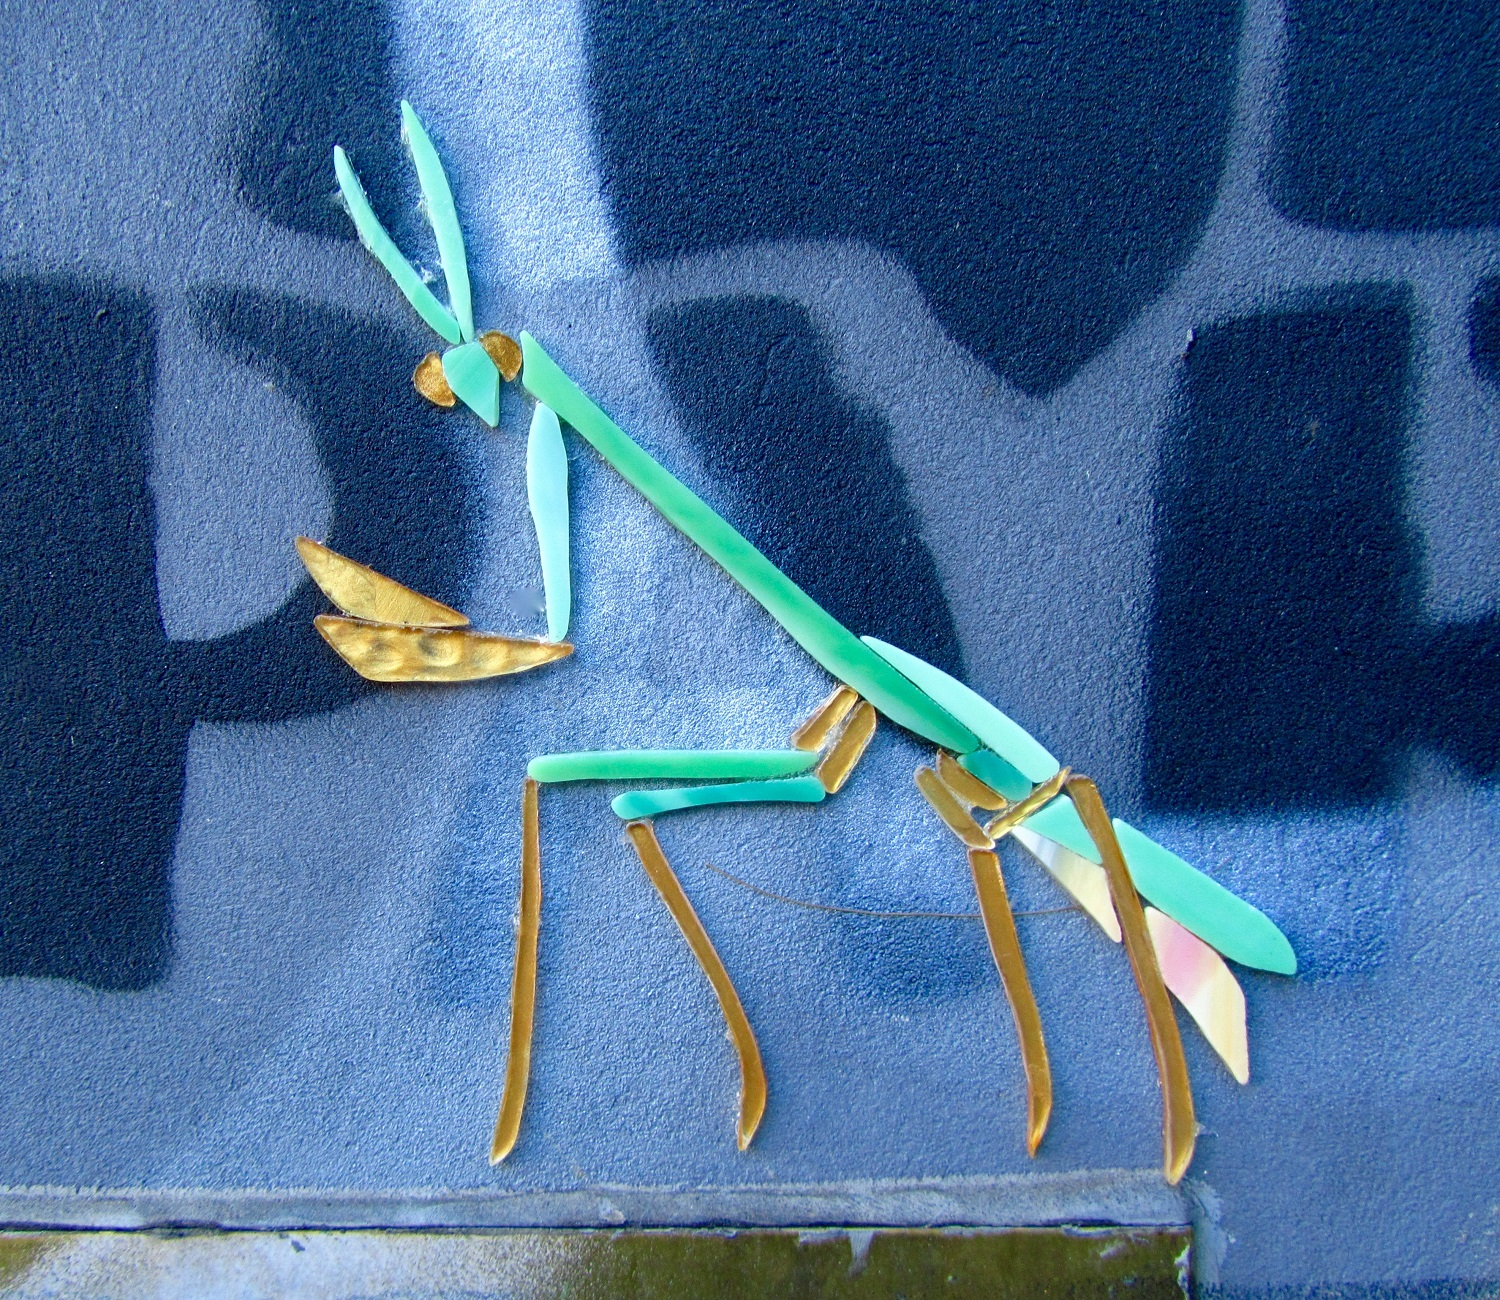 Wing-glass-street-art-praying-mantis.jpg